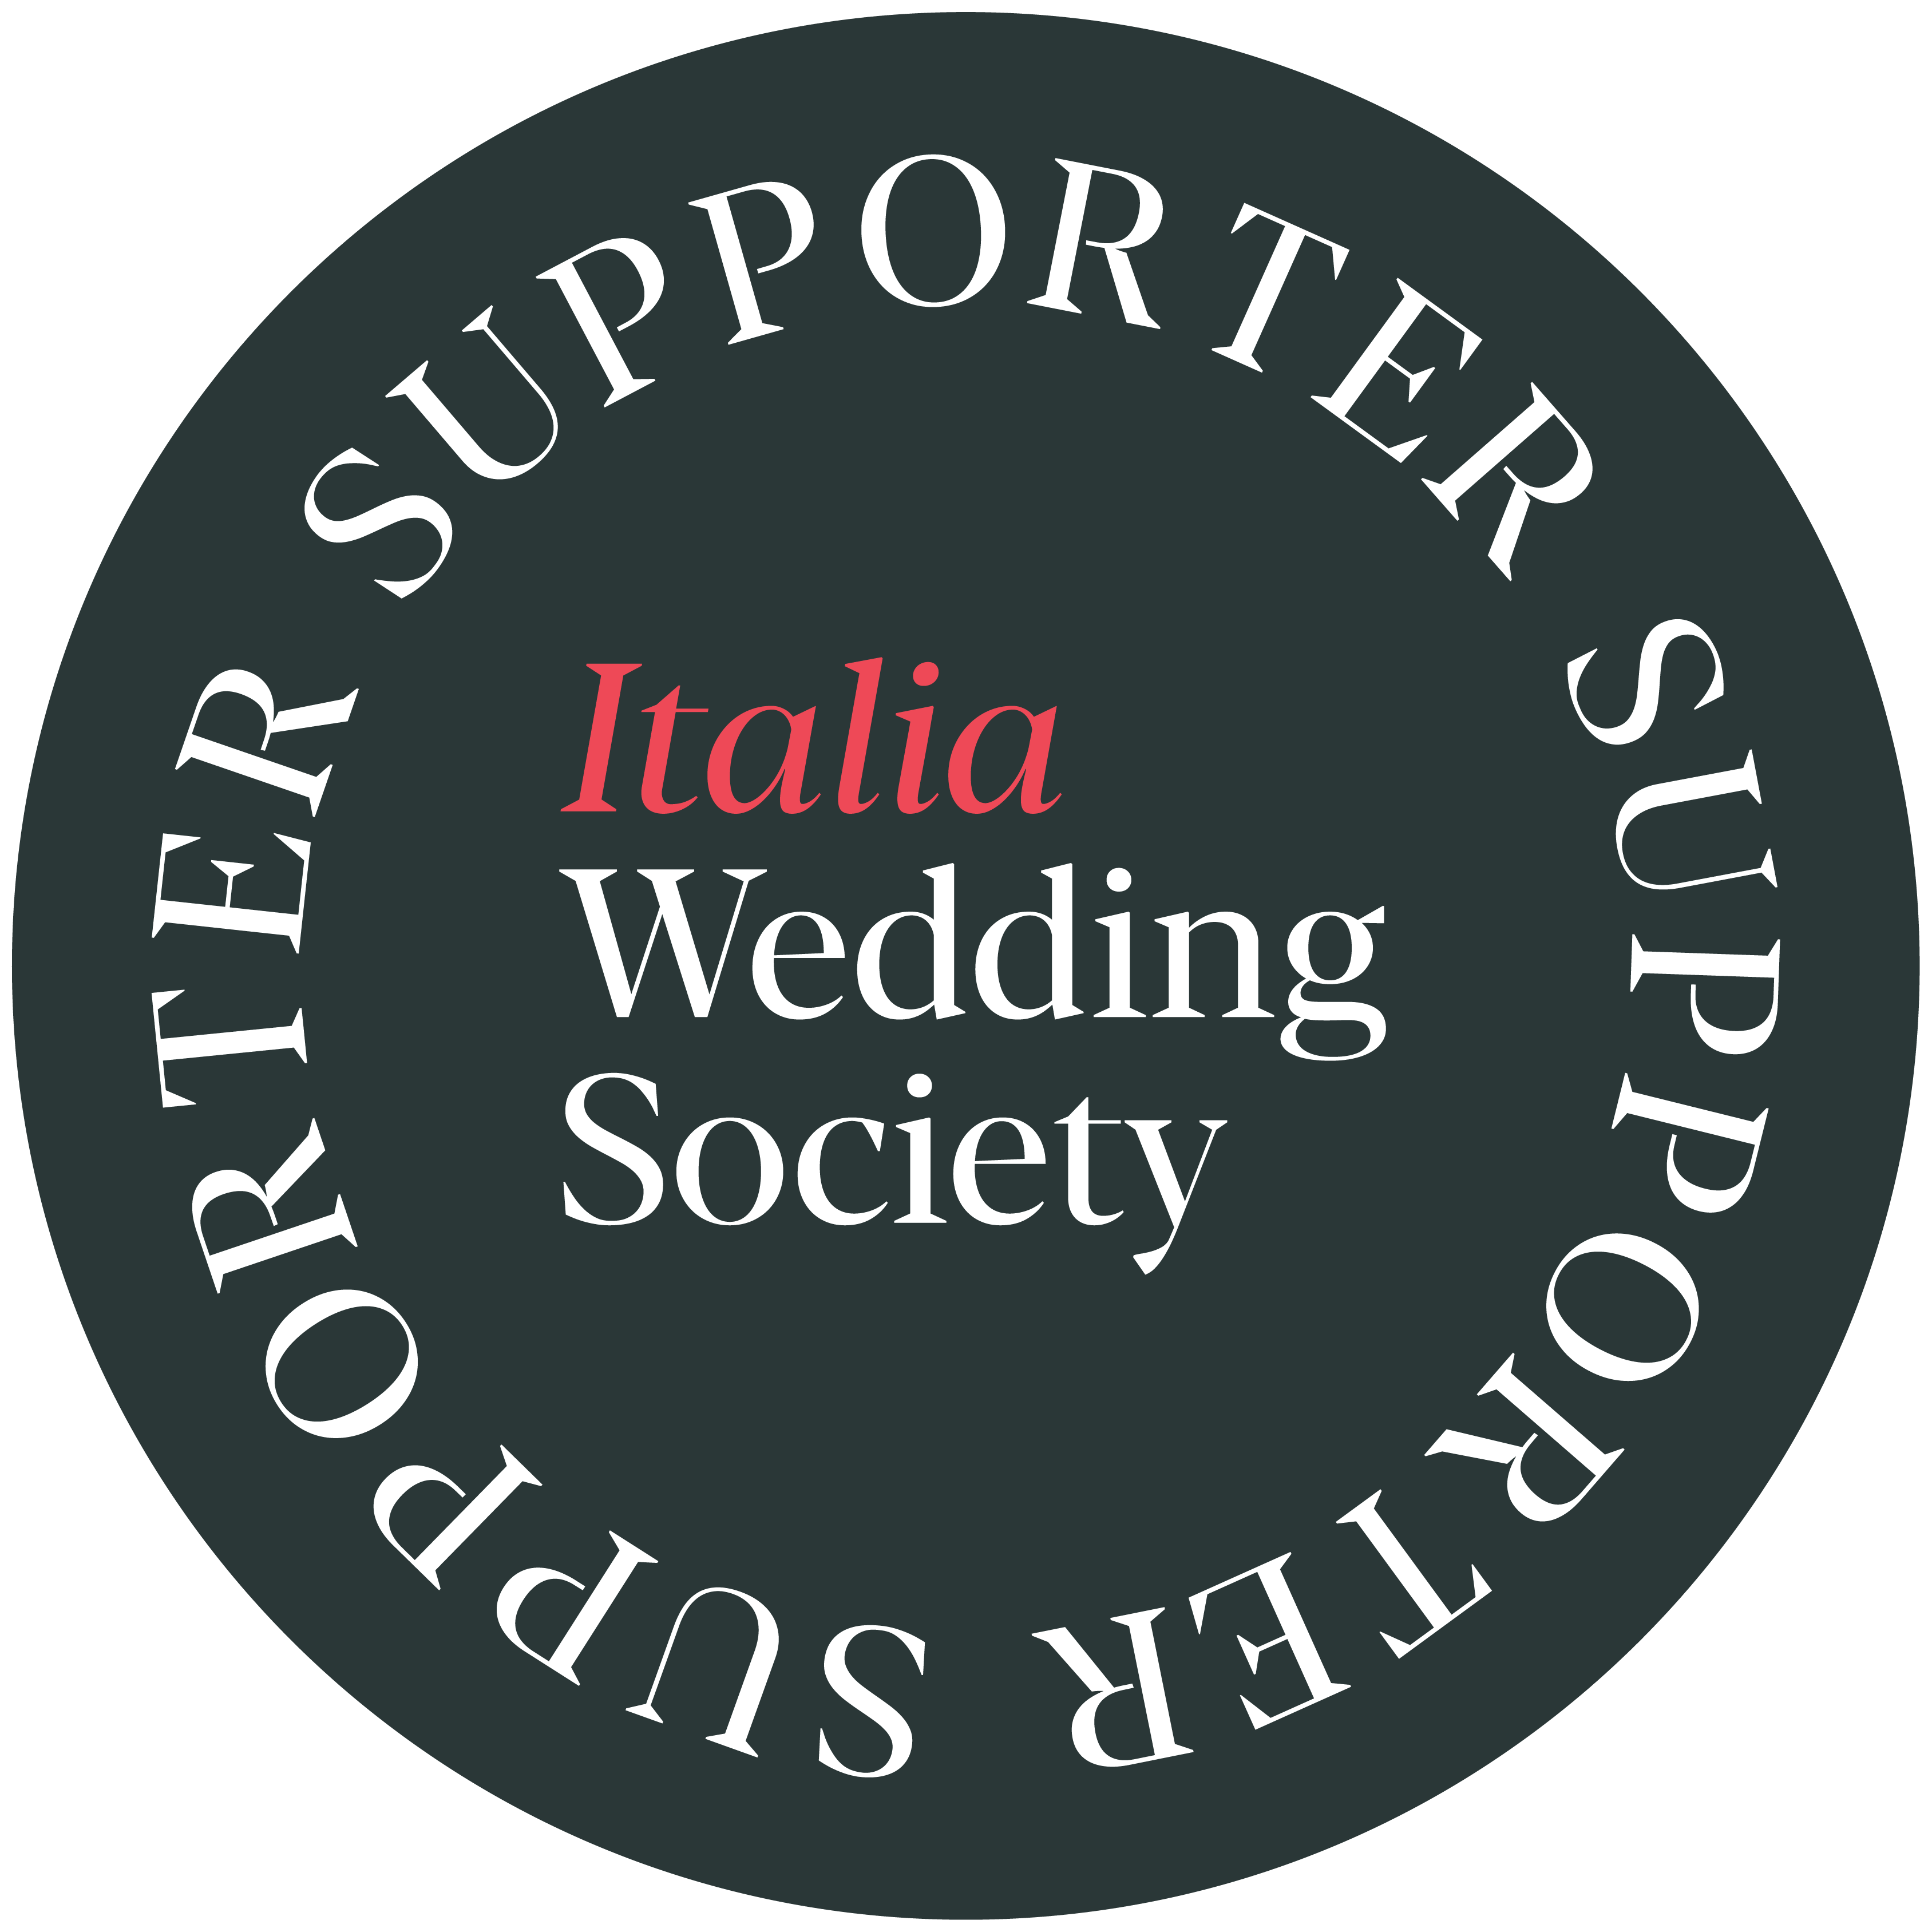 italia wedding society